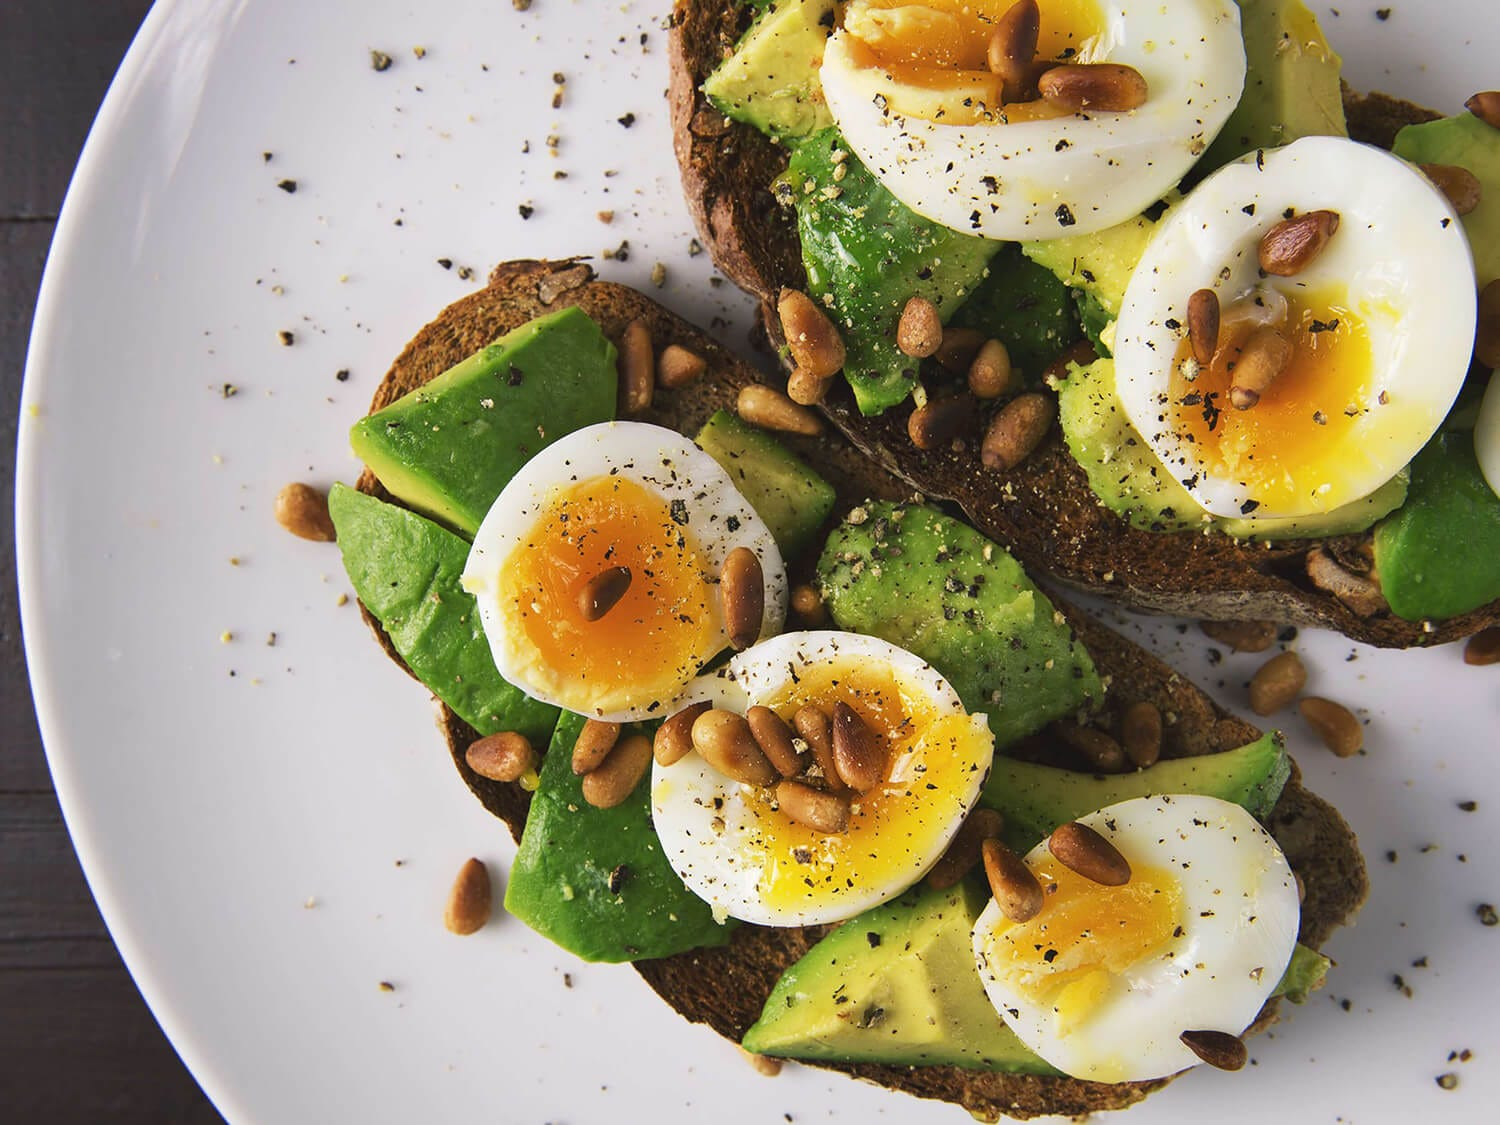 10 WAYS TO MAKE YOUR AVOCADO TOAST MORE EXCITING